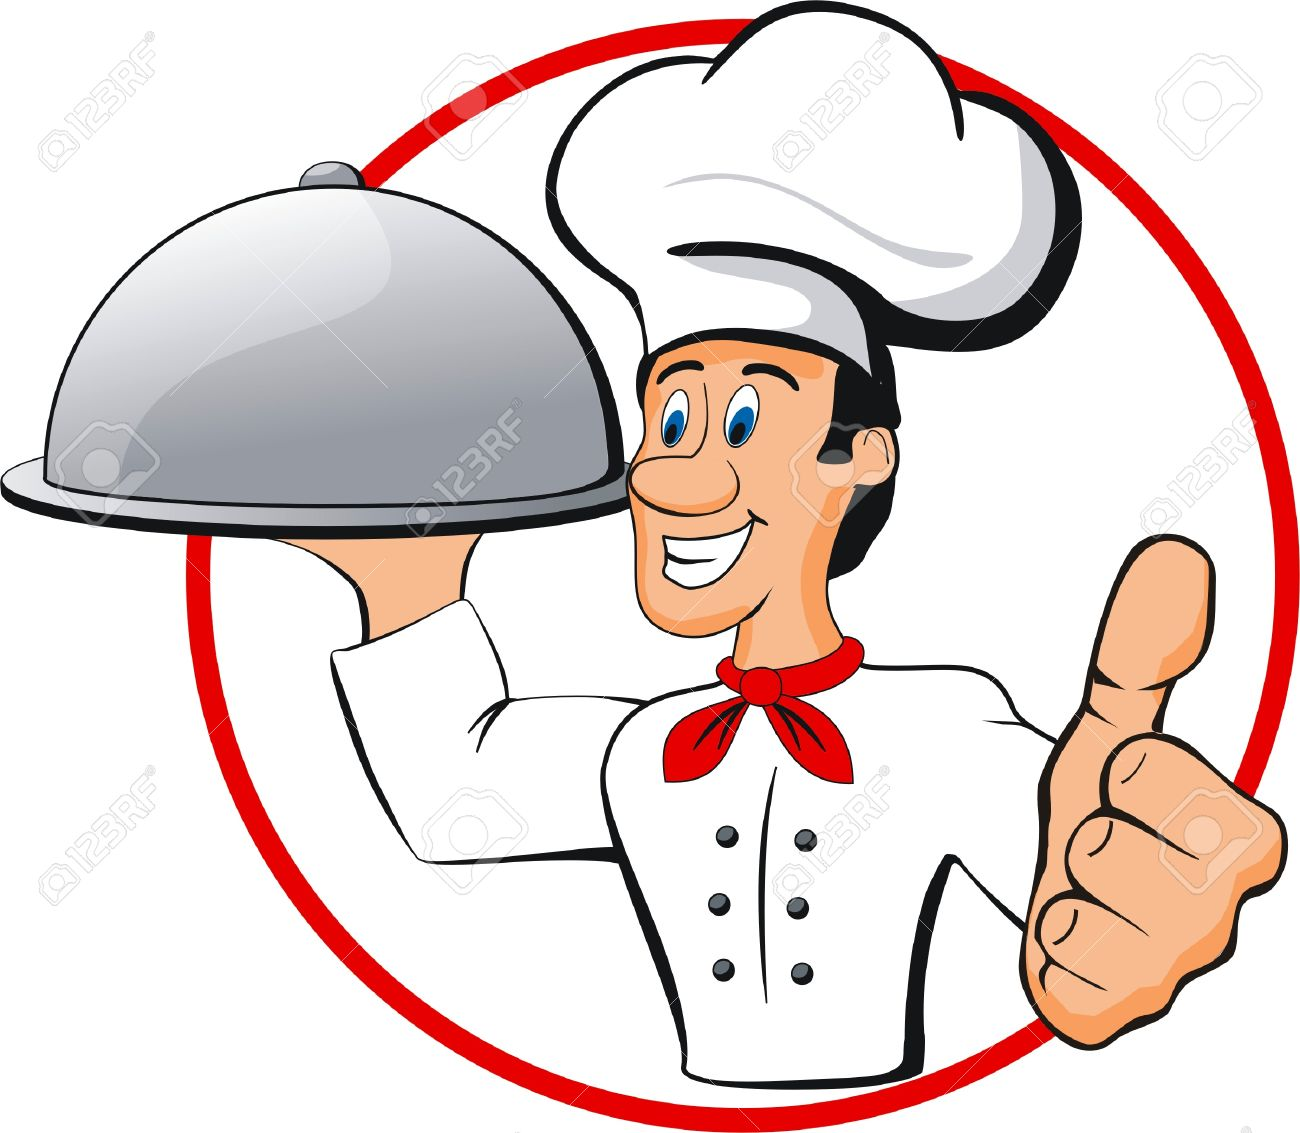 Happy Chef Royalty Free Cliparts, Vectors, And Stock Illustration.